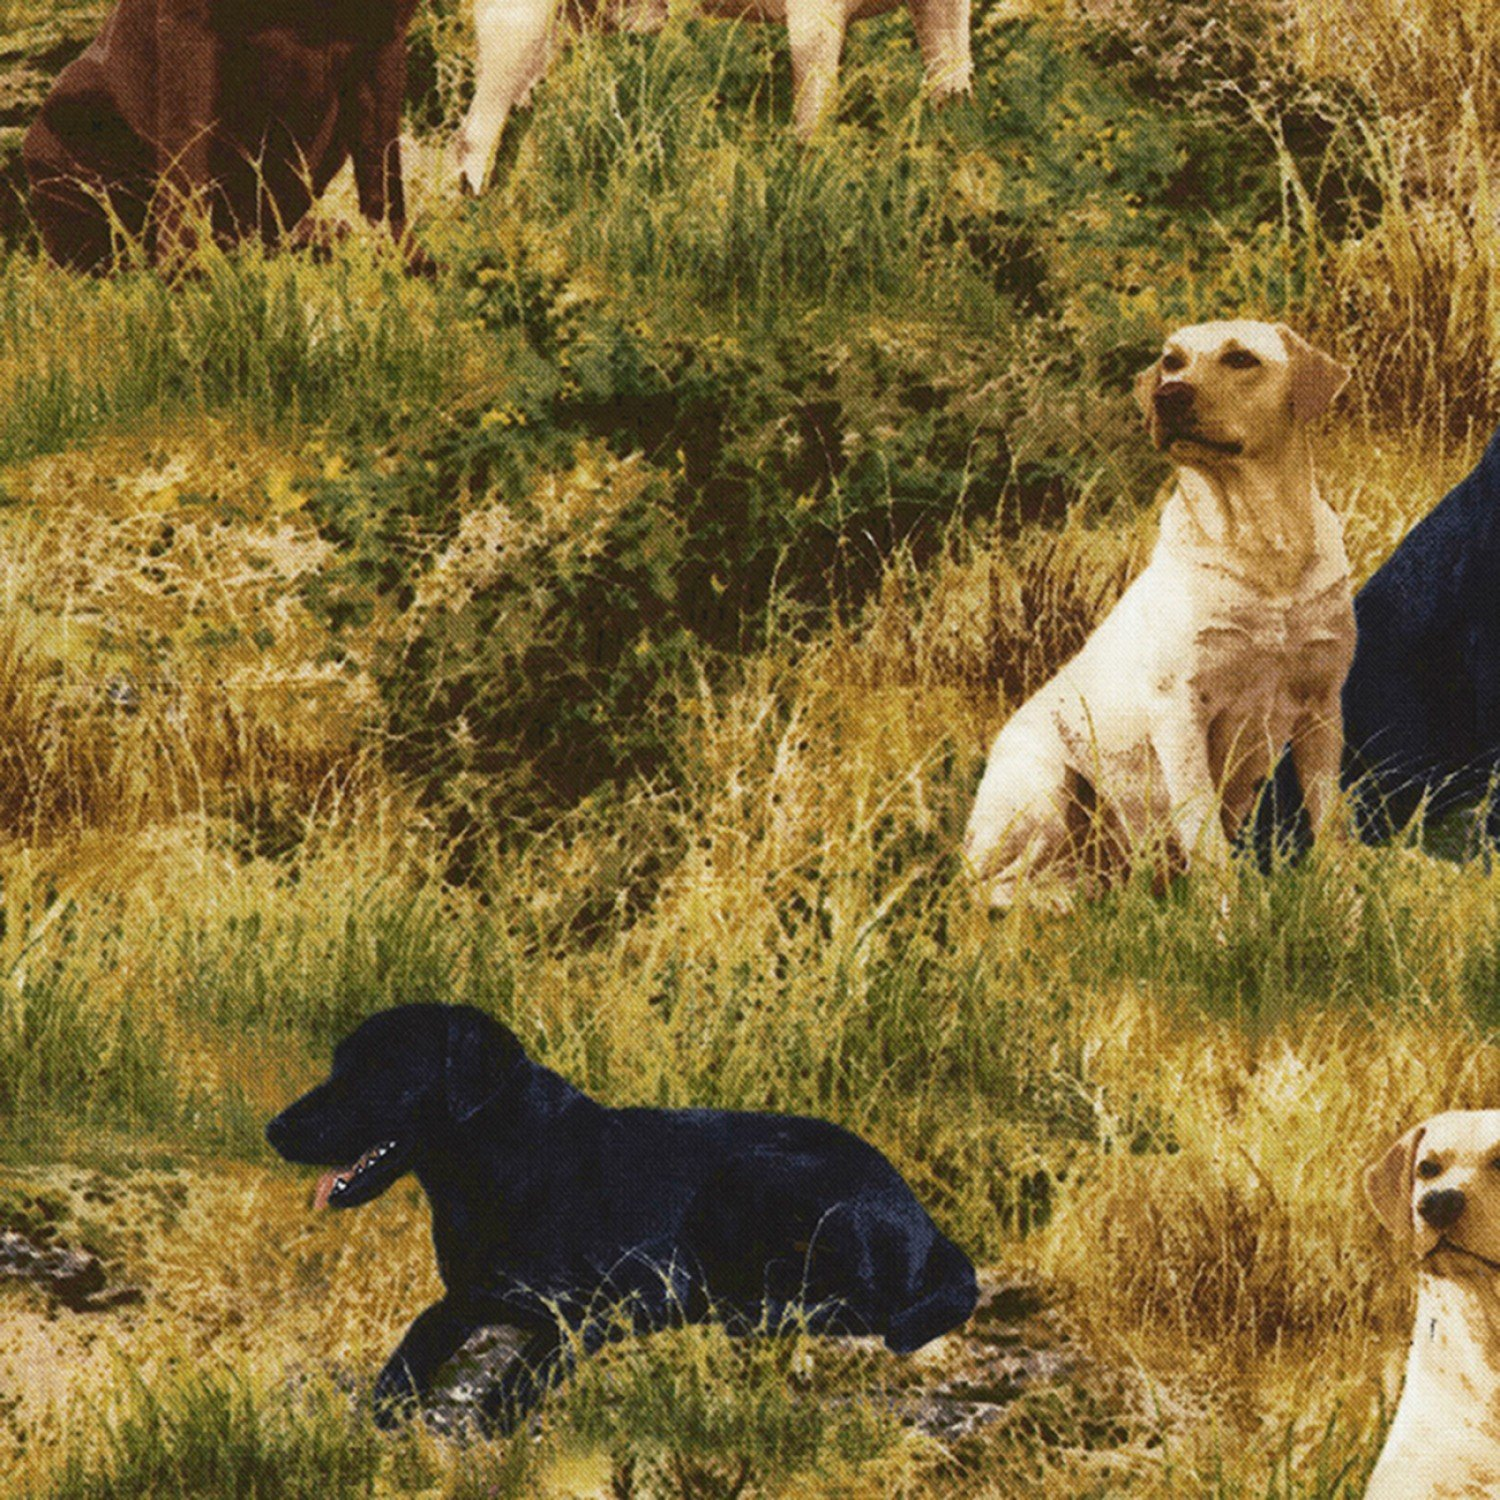 Deep in the Woods C6685 Grass - Dogs